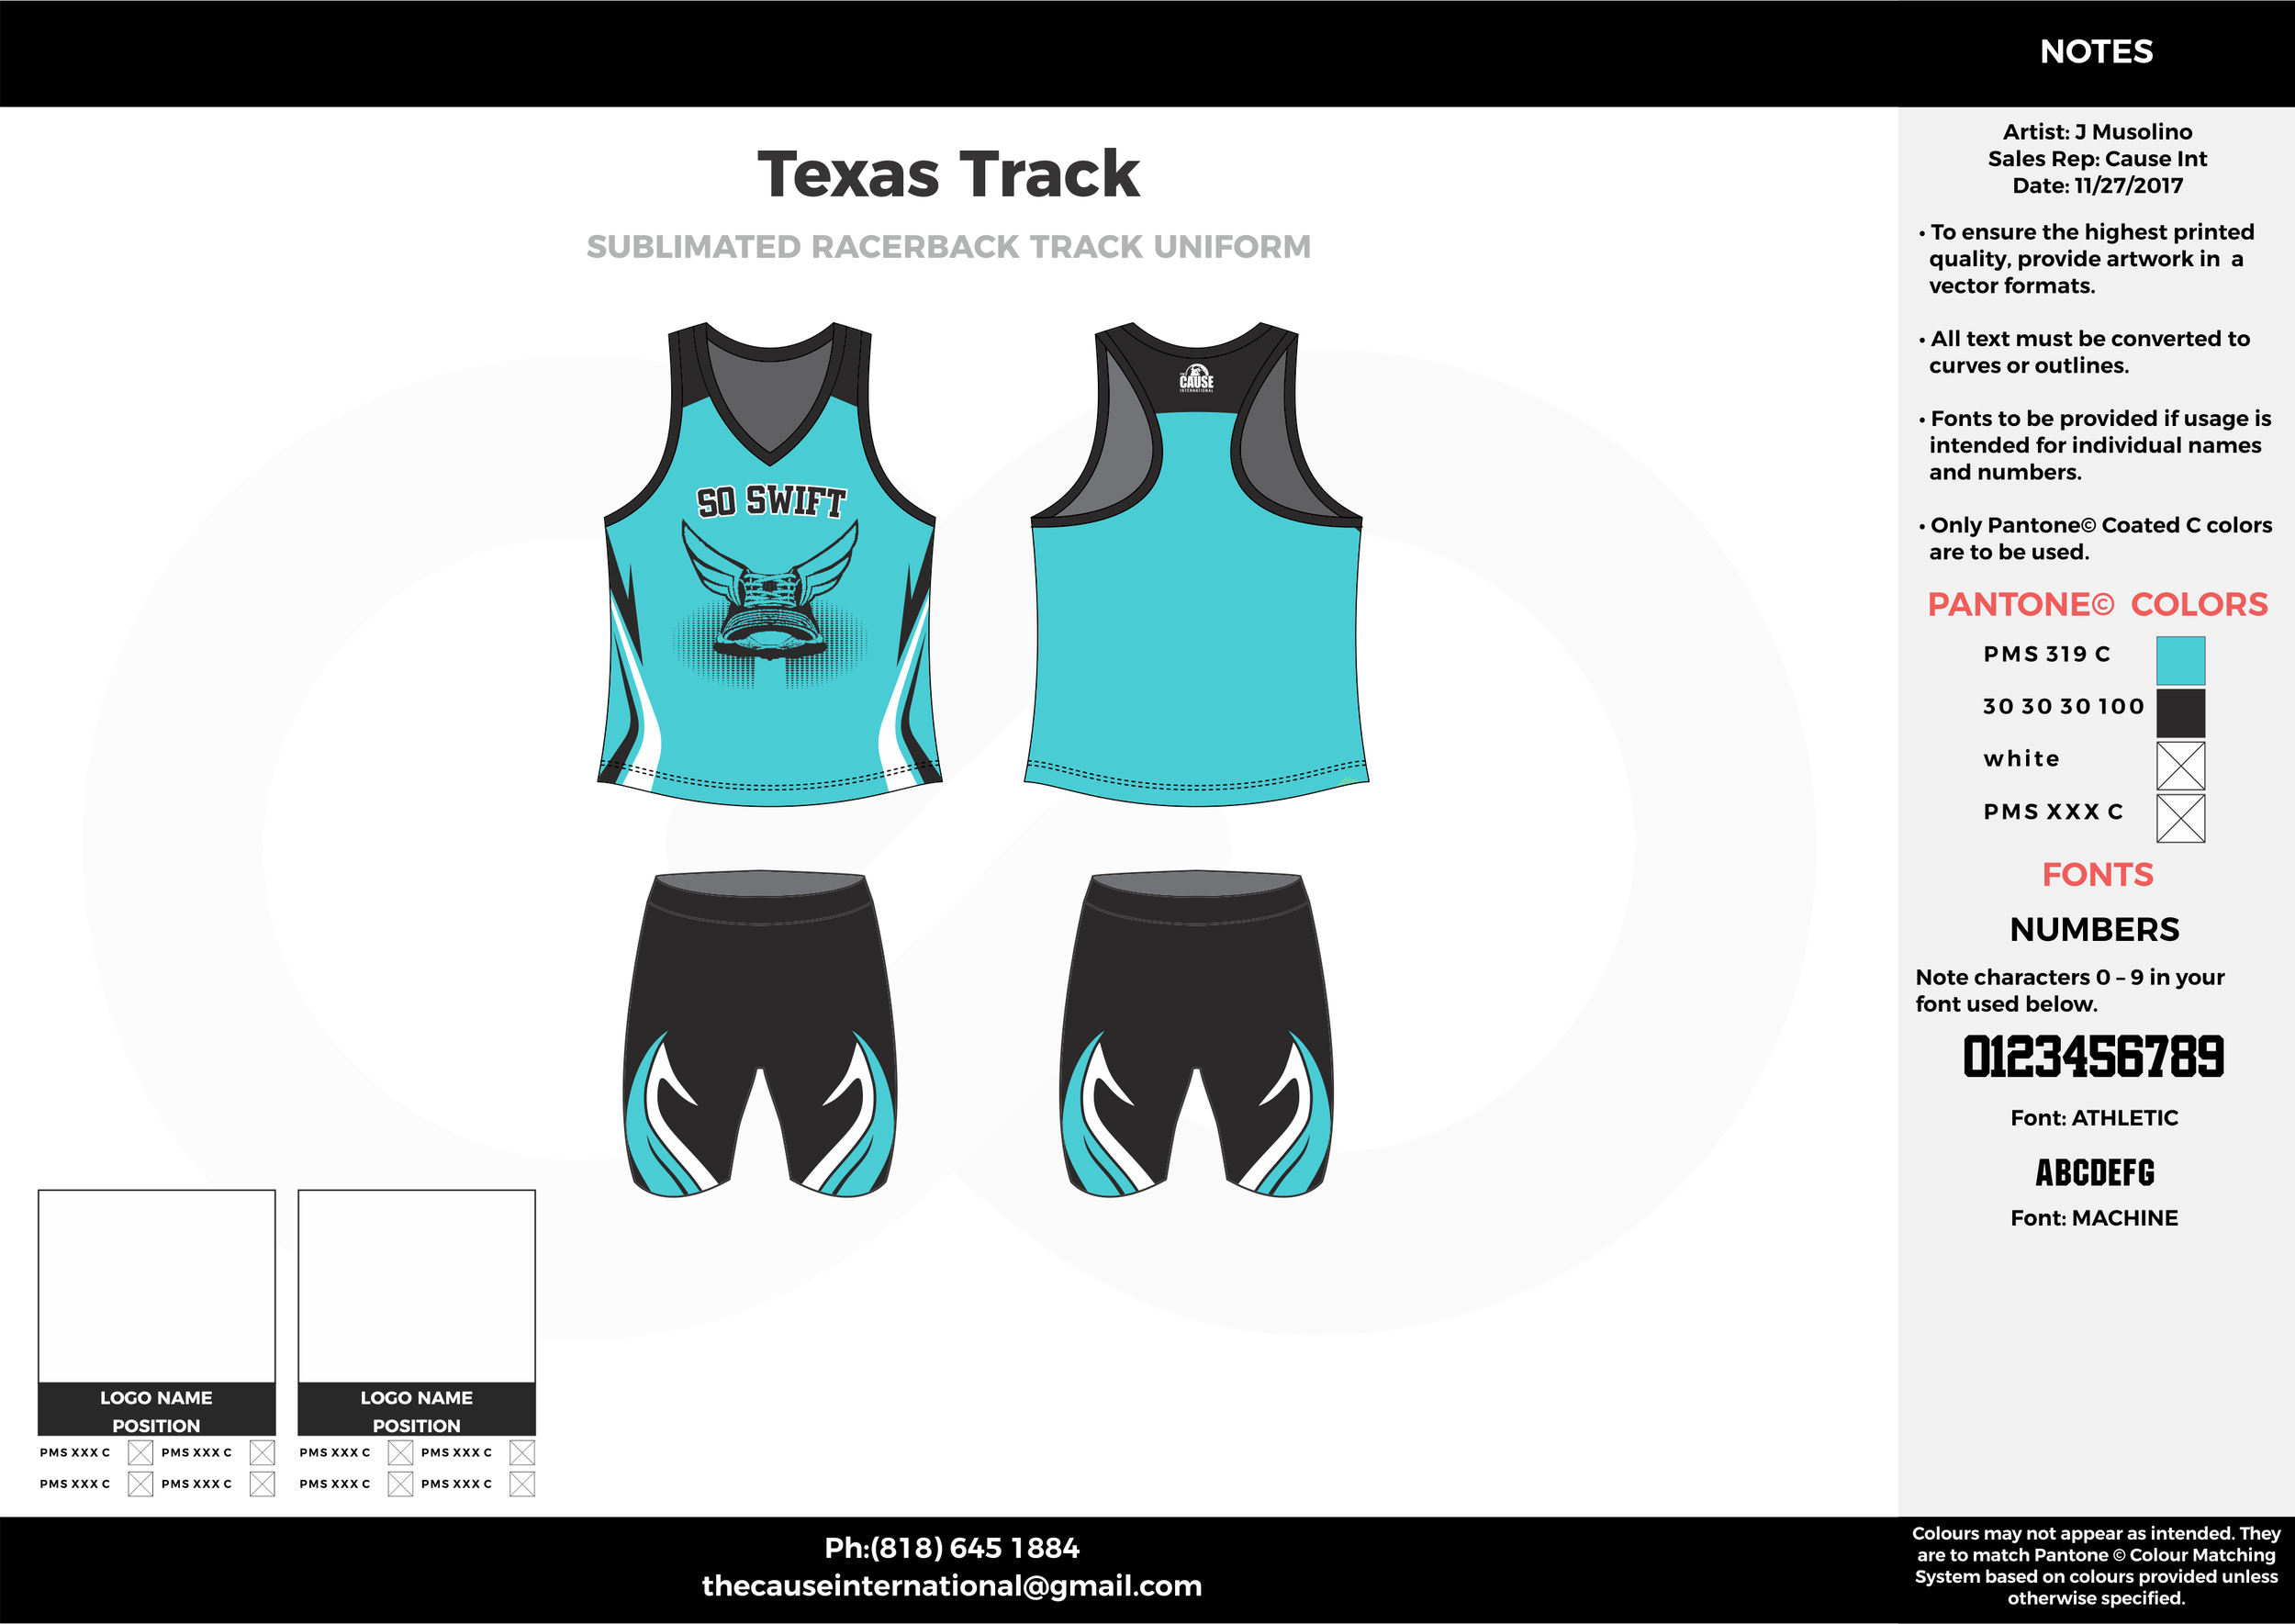 Texas Track Skyblue Black and white Sublimated Compression Track Uniforms tank and shorts